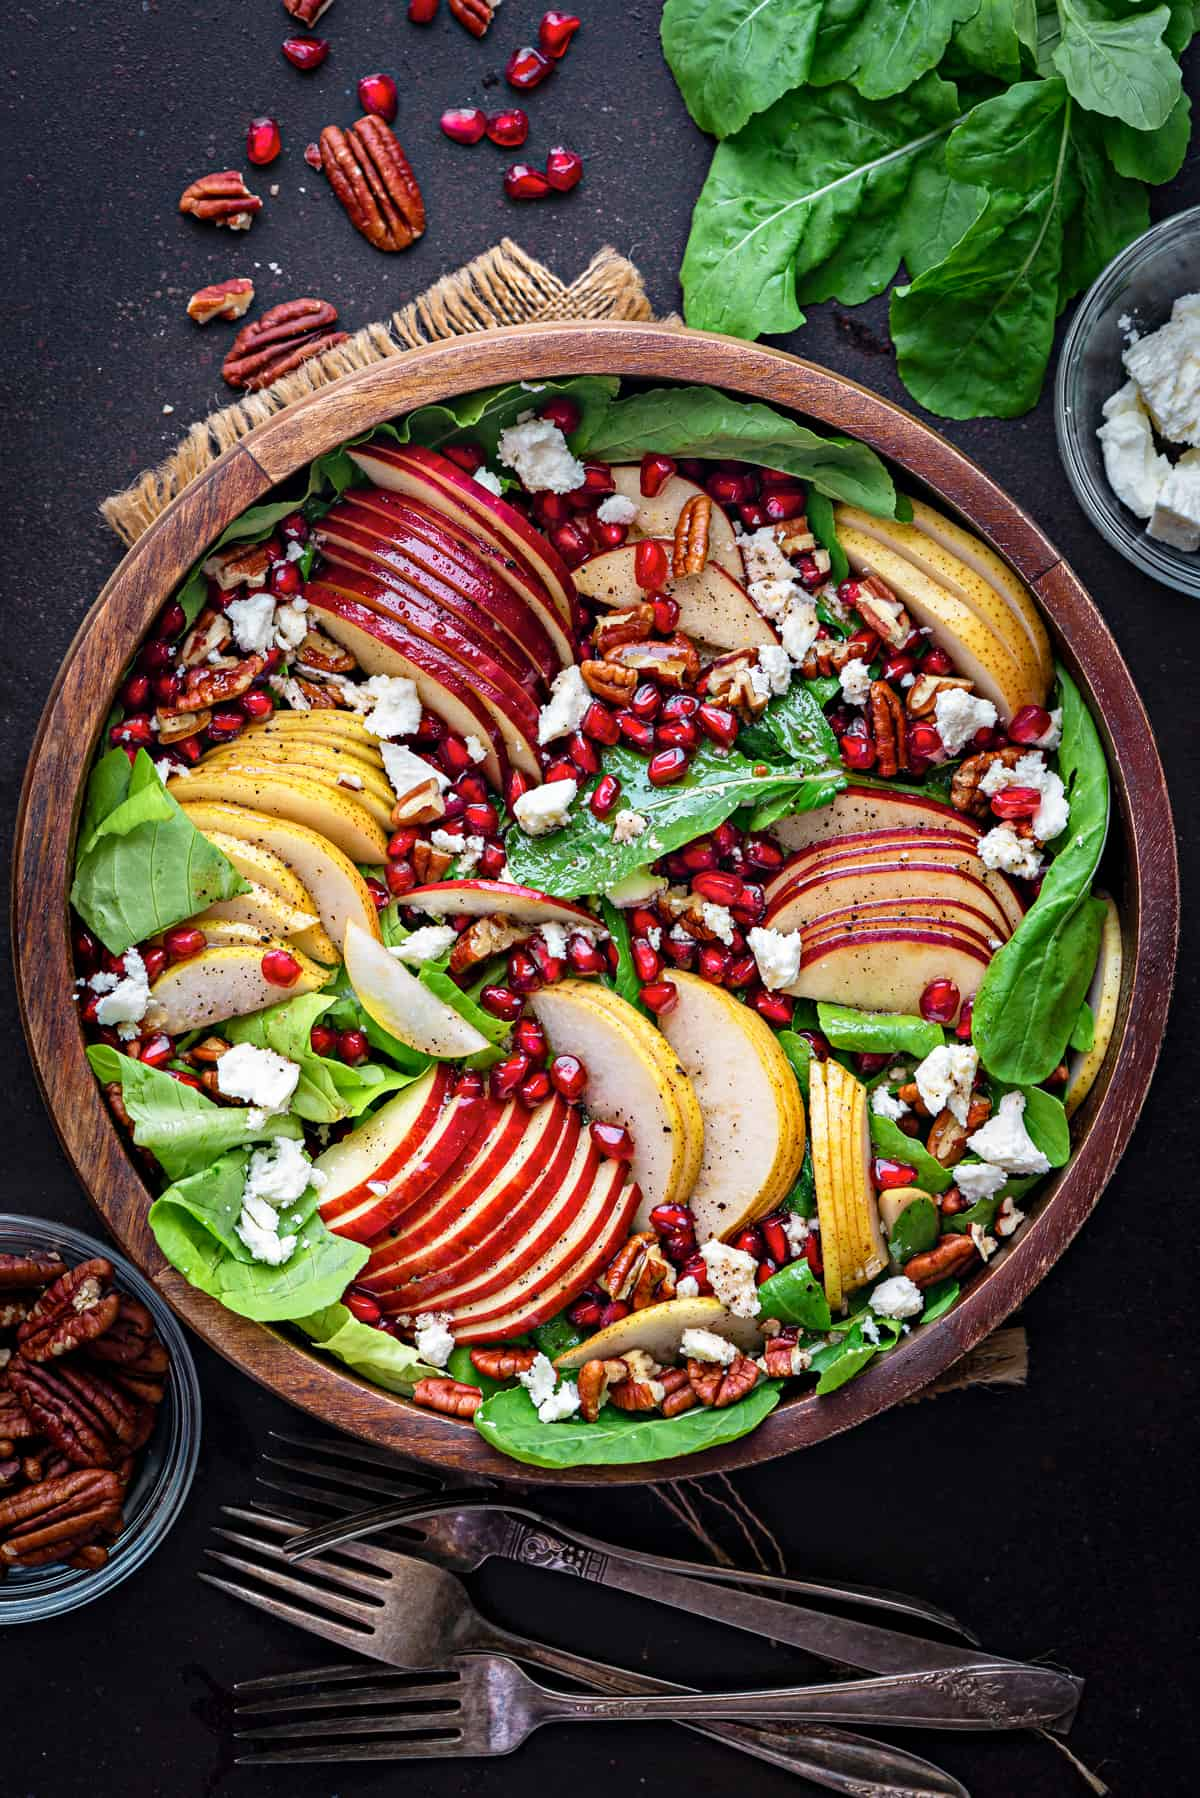 assembled autumn harvest fall salad in a wooden serving bowl with red apples slices, golden pears